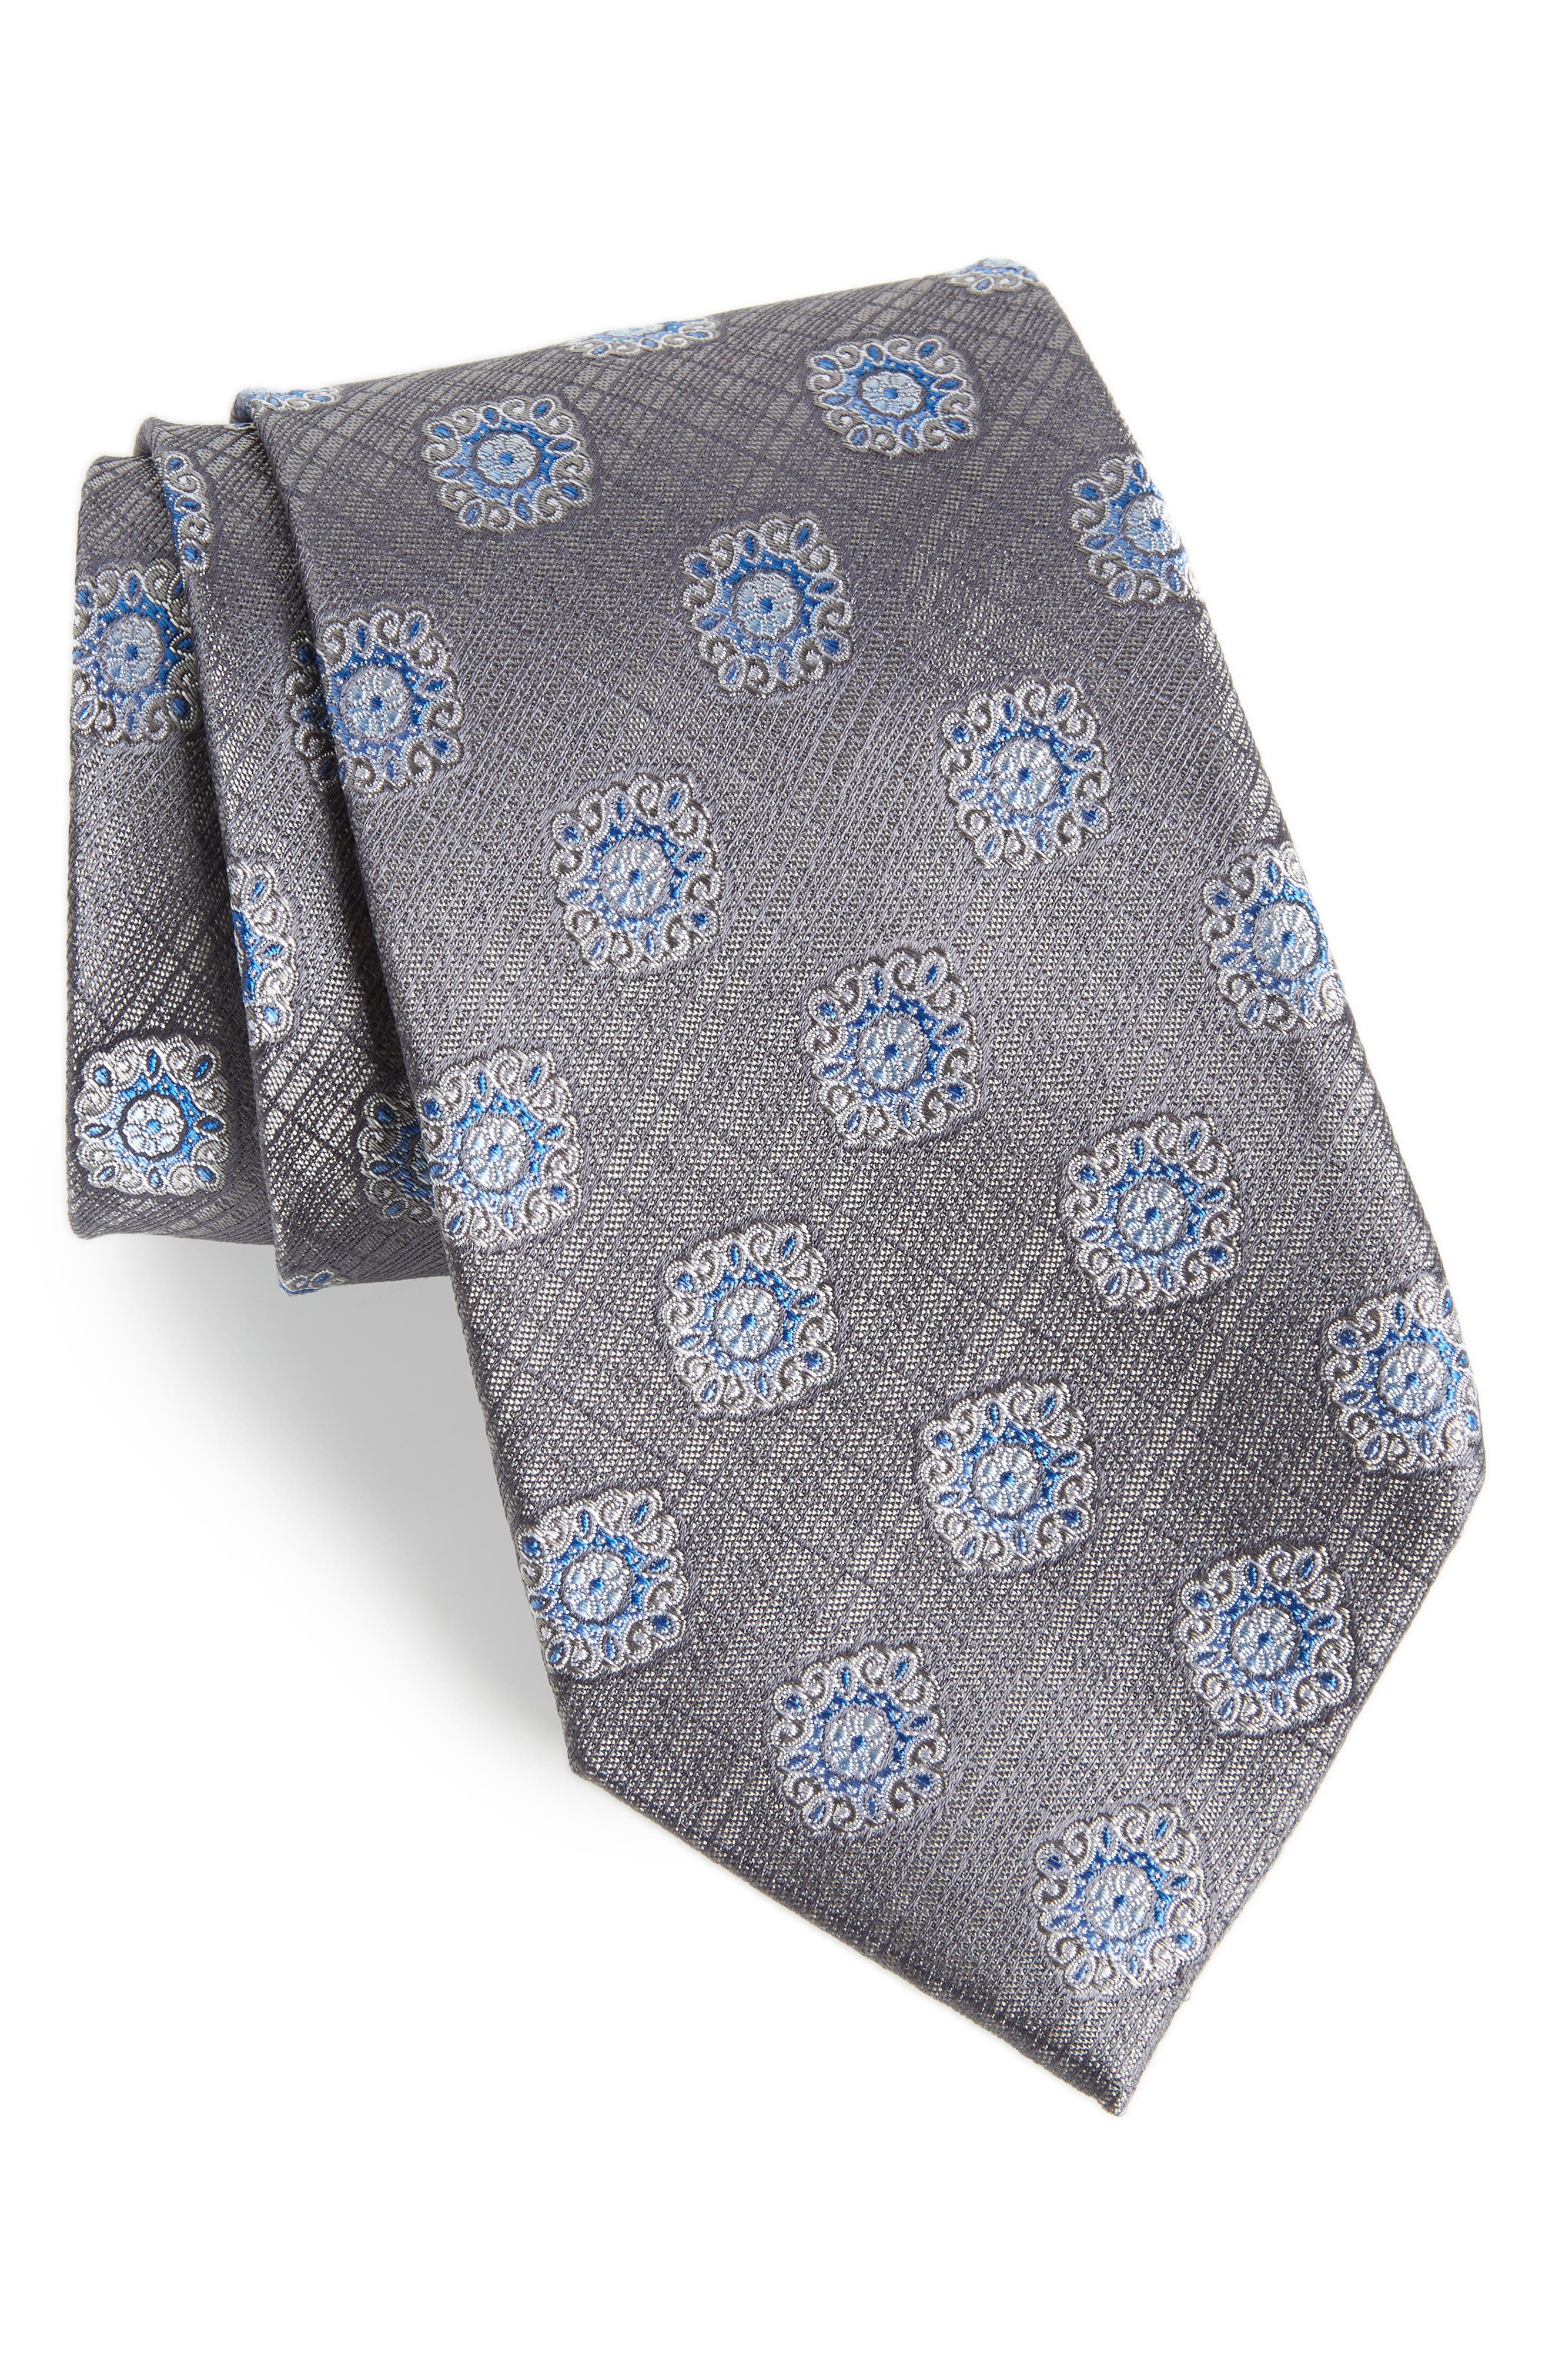 Armas Medallion Silk Tie,                             Main thumbnail 1, color,                             020